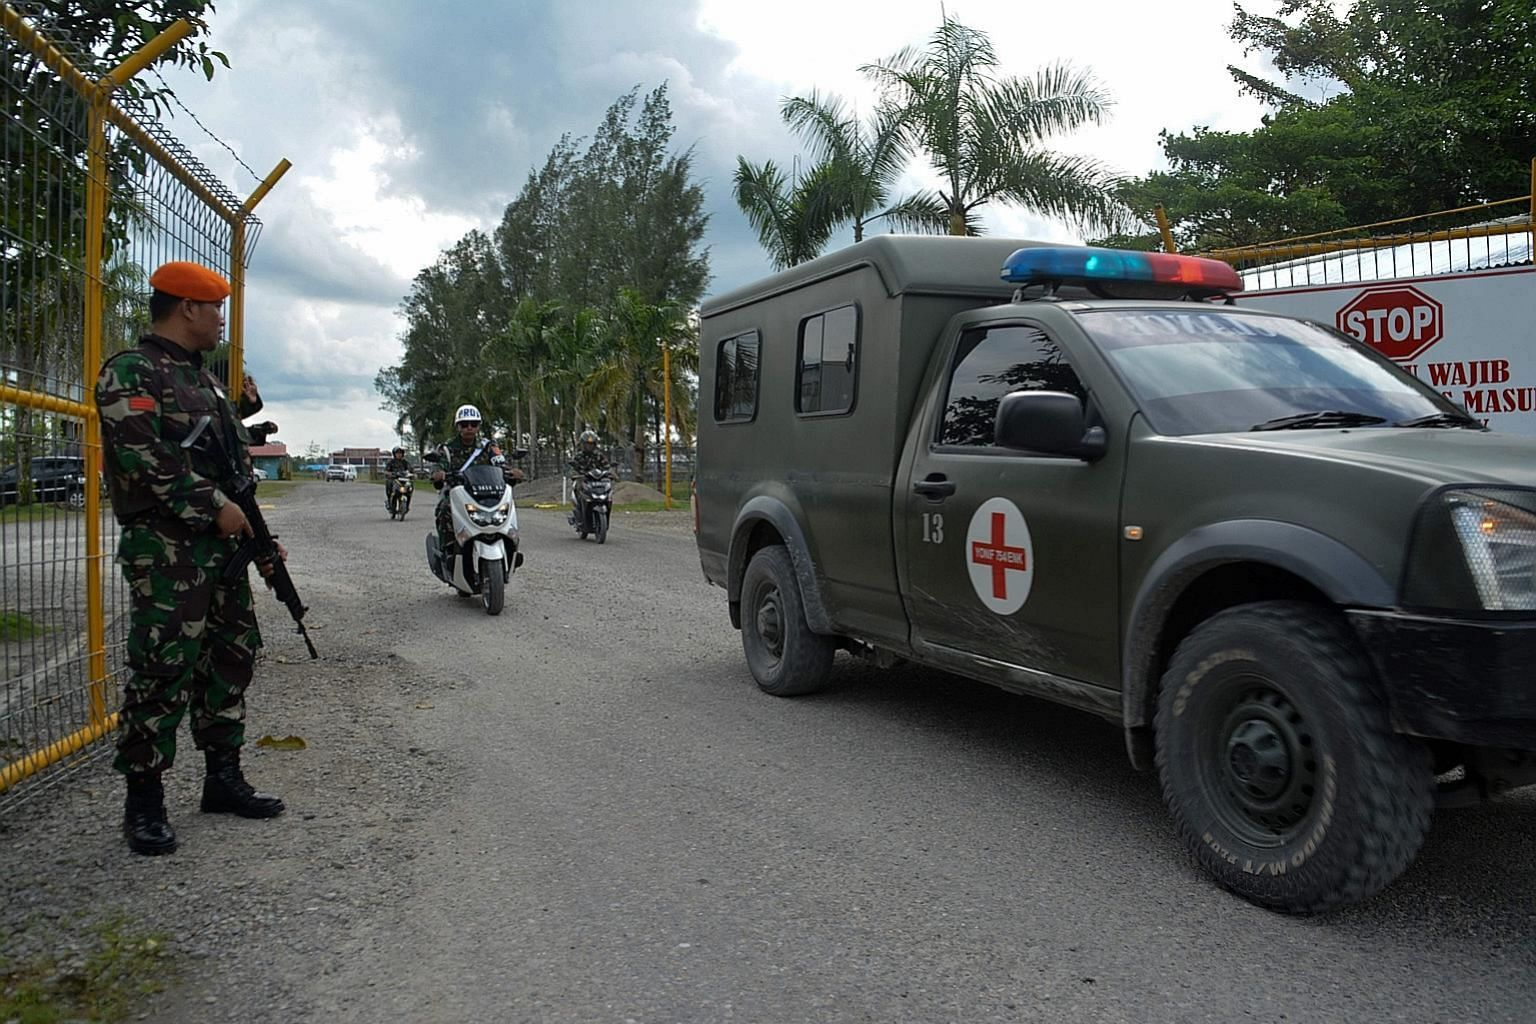 An Indonesian military ambulance evacuating the body of a soldier killed by rebels in Papua province earlier this month. Indonesia annexed the mineral-rich region in 1969 with a United Nations-backed vote that was widely seen as a sham.